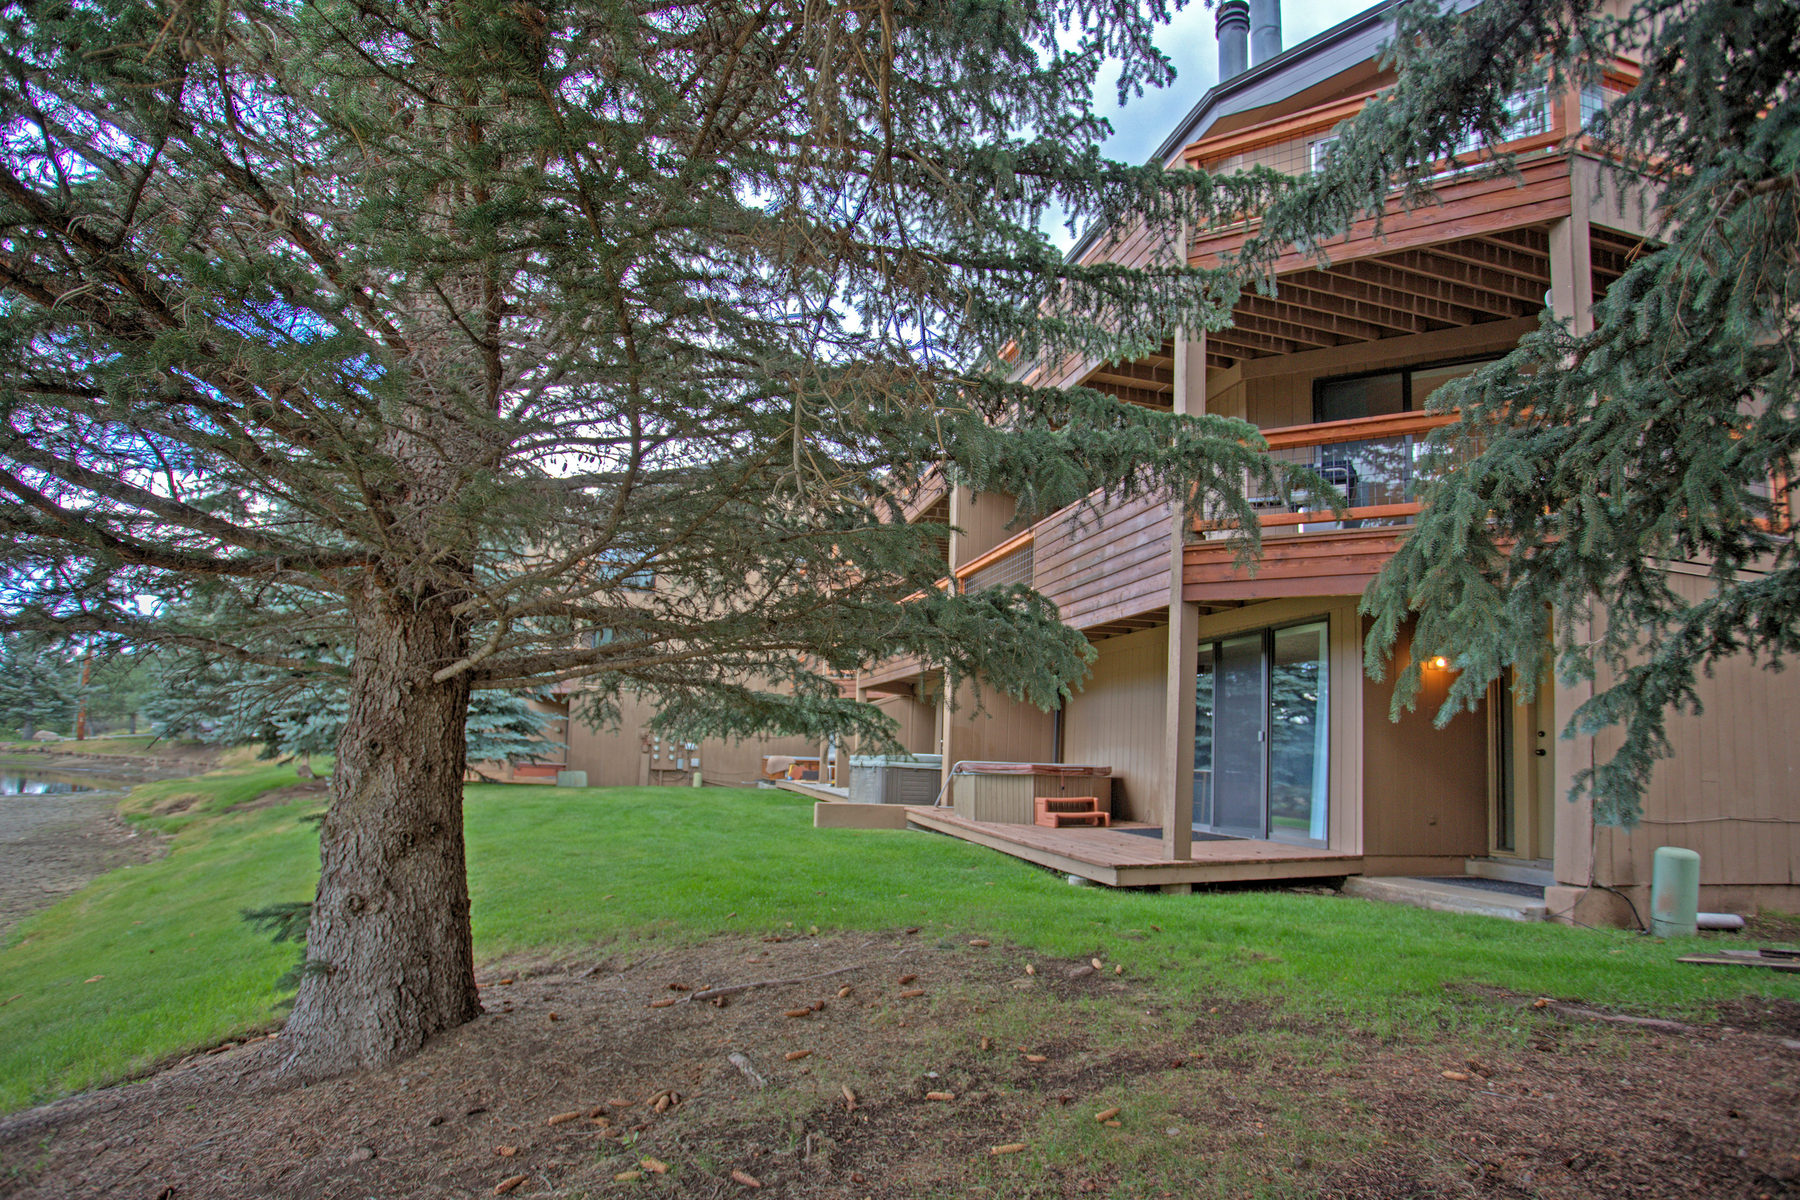 Single Family Home for Sale at Cool Saddle Condominium 740 Saddle View Way #15 Park City, Utah 84060 United States